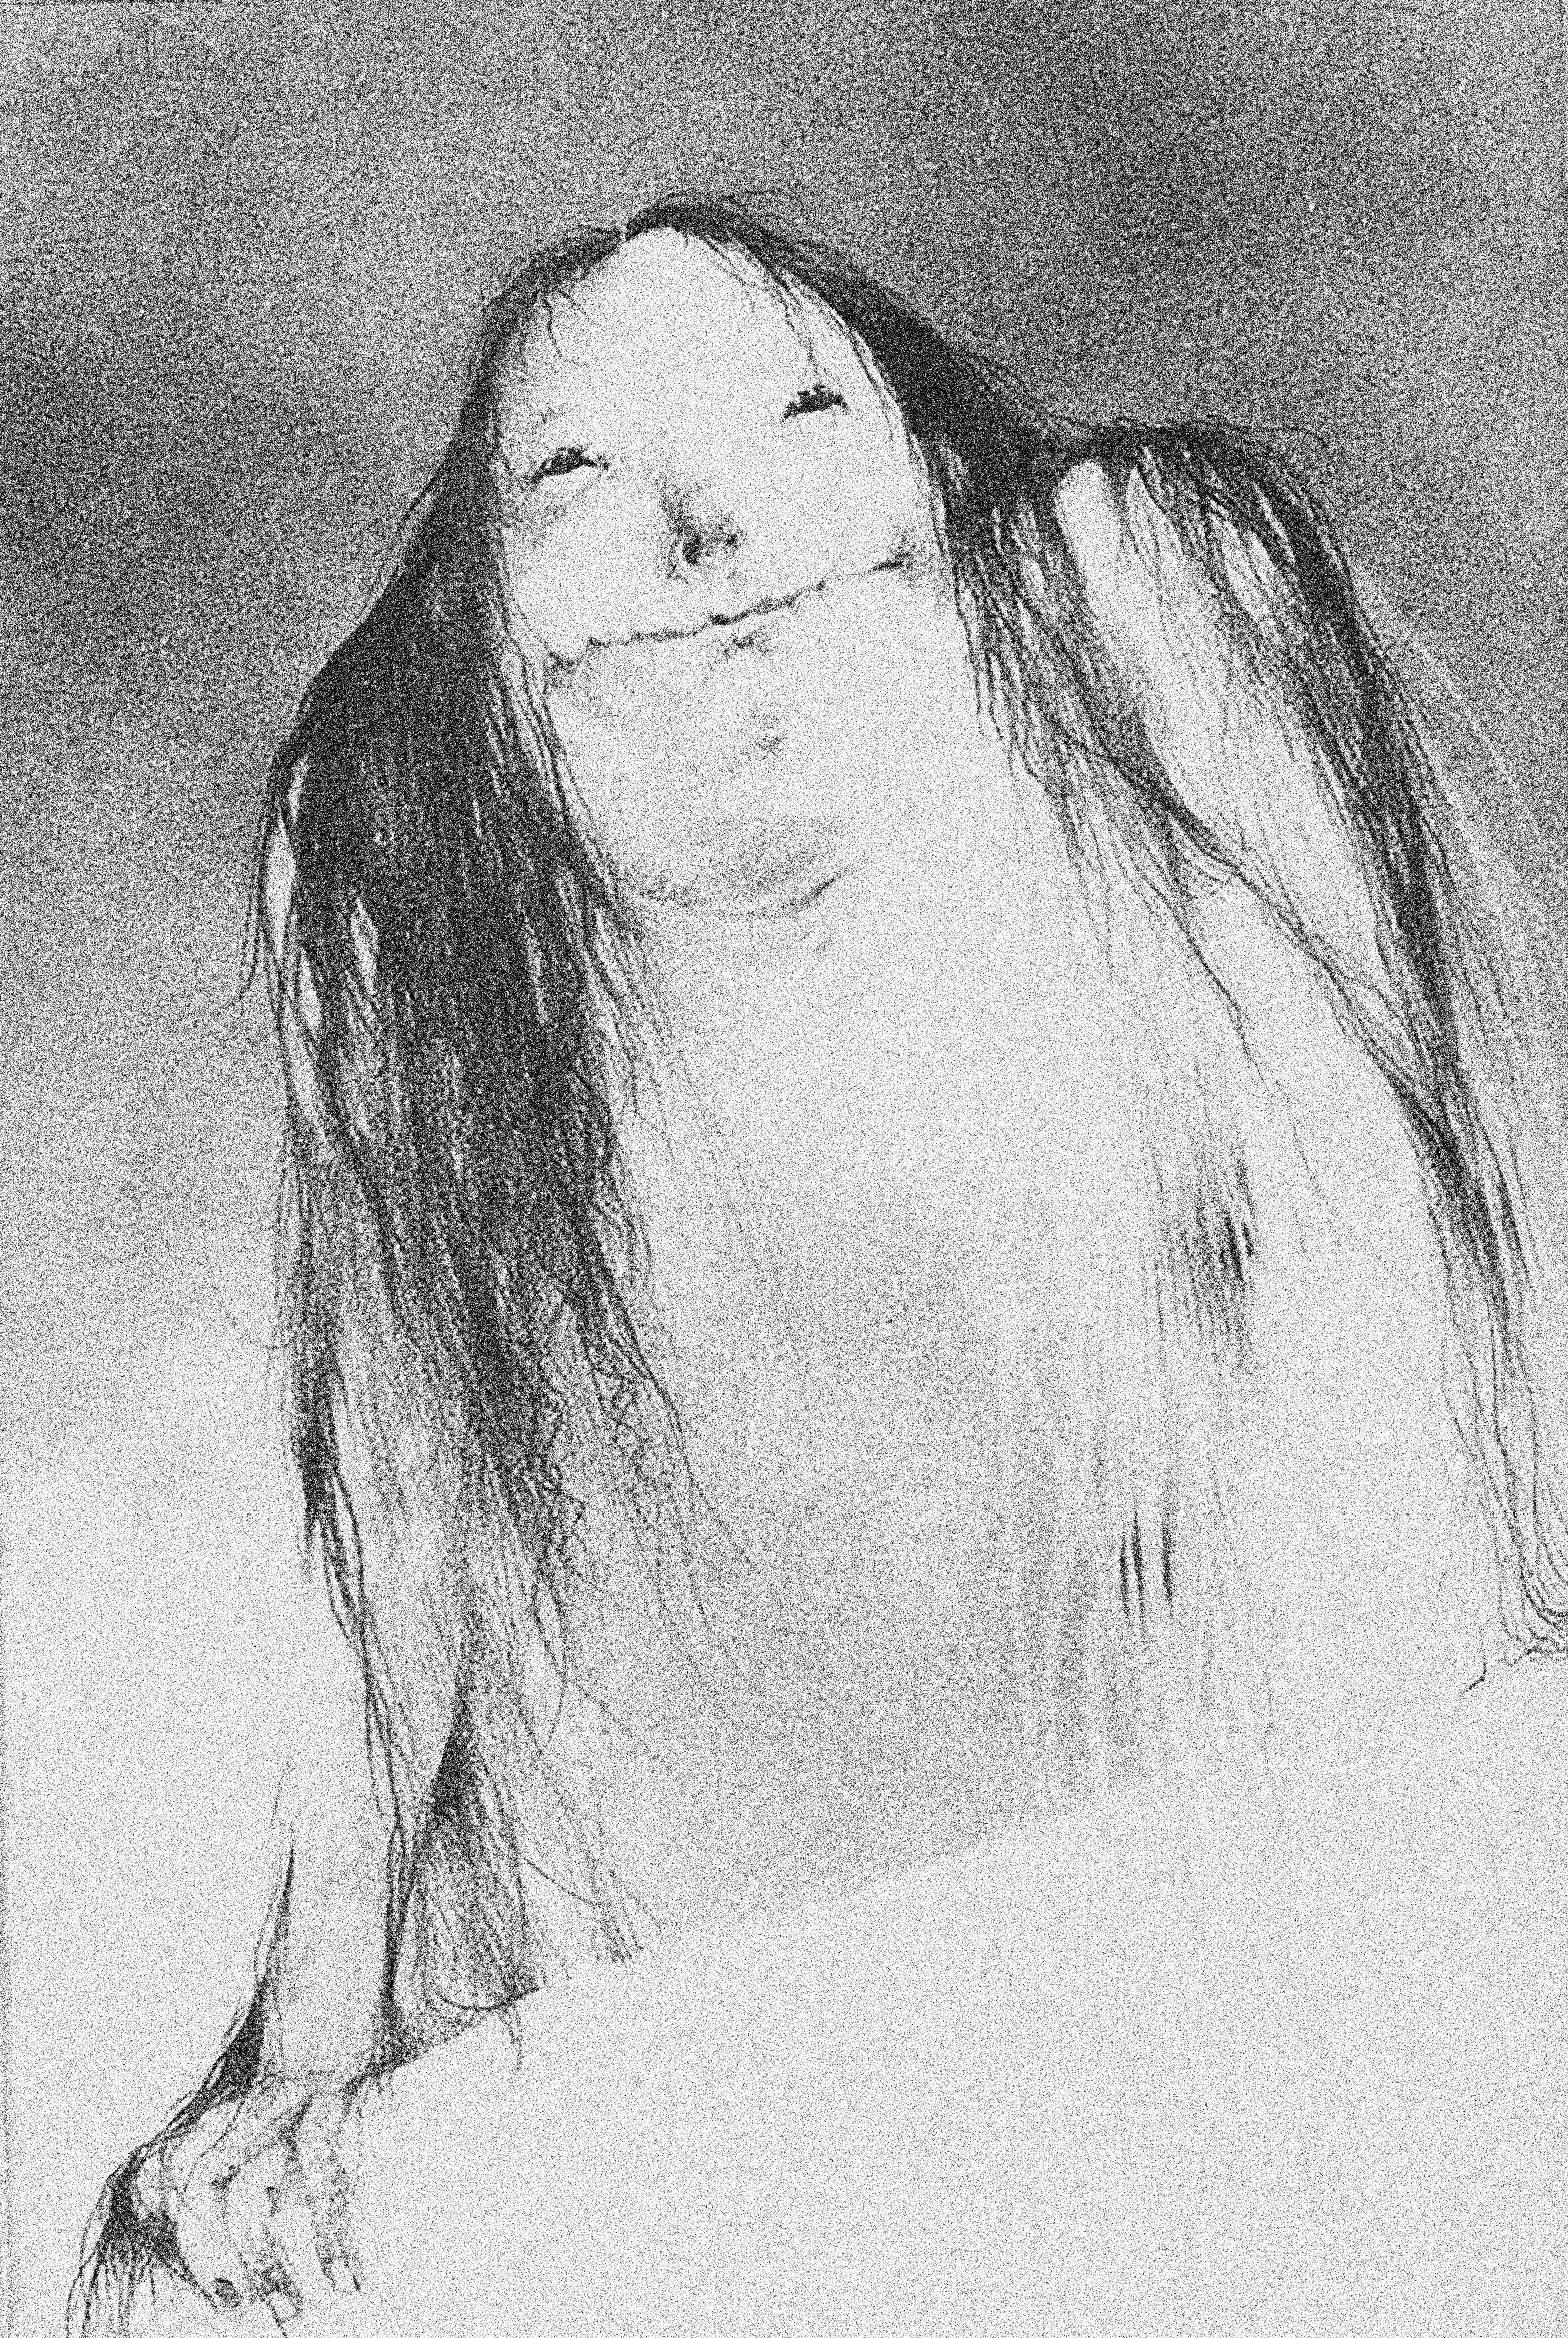 Stephen Gammell's illustration of  The Pale Lady  from the book series  Scary Stories to Tell In The Dark,  written by Alvin Schwartz